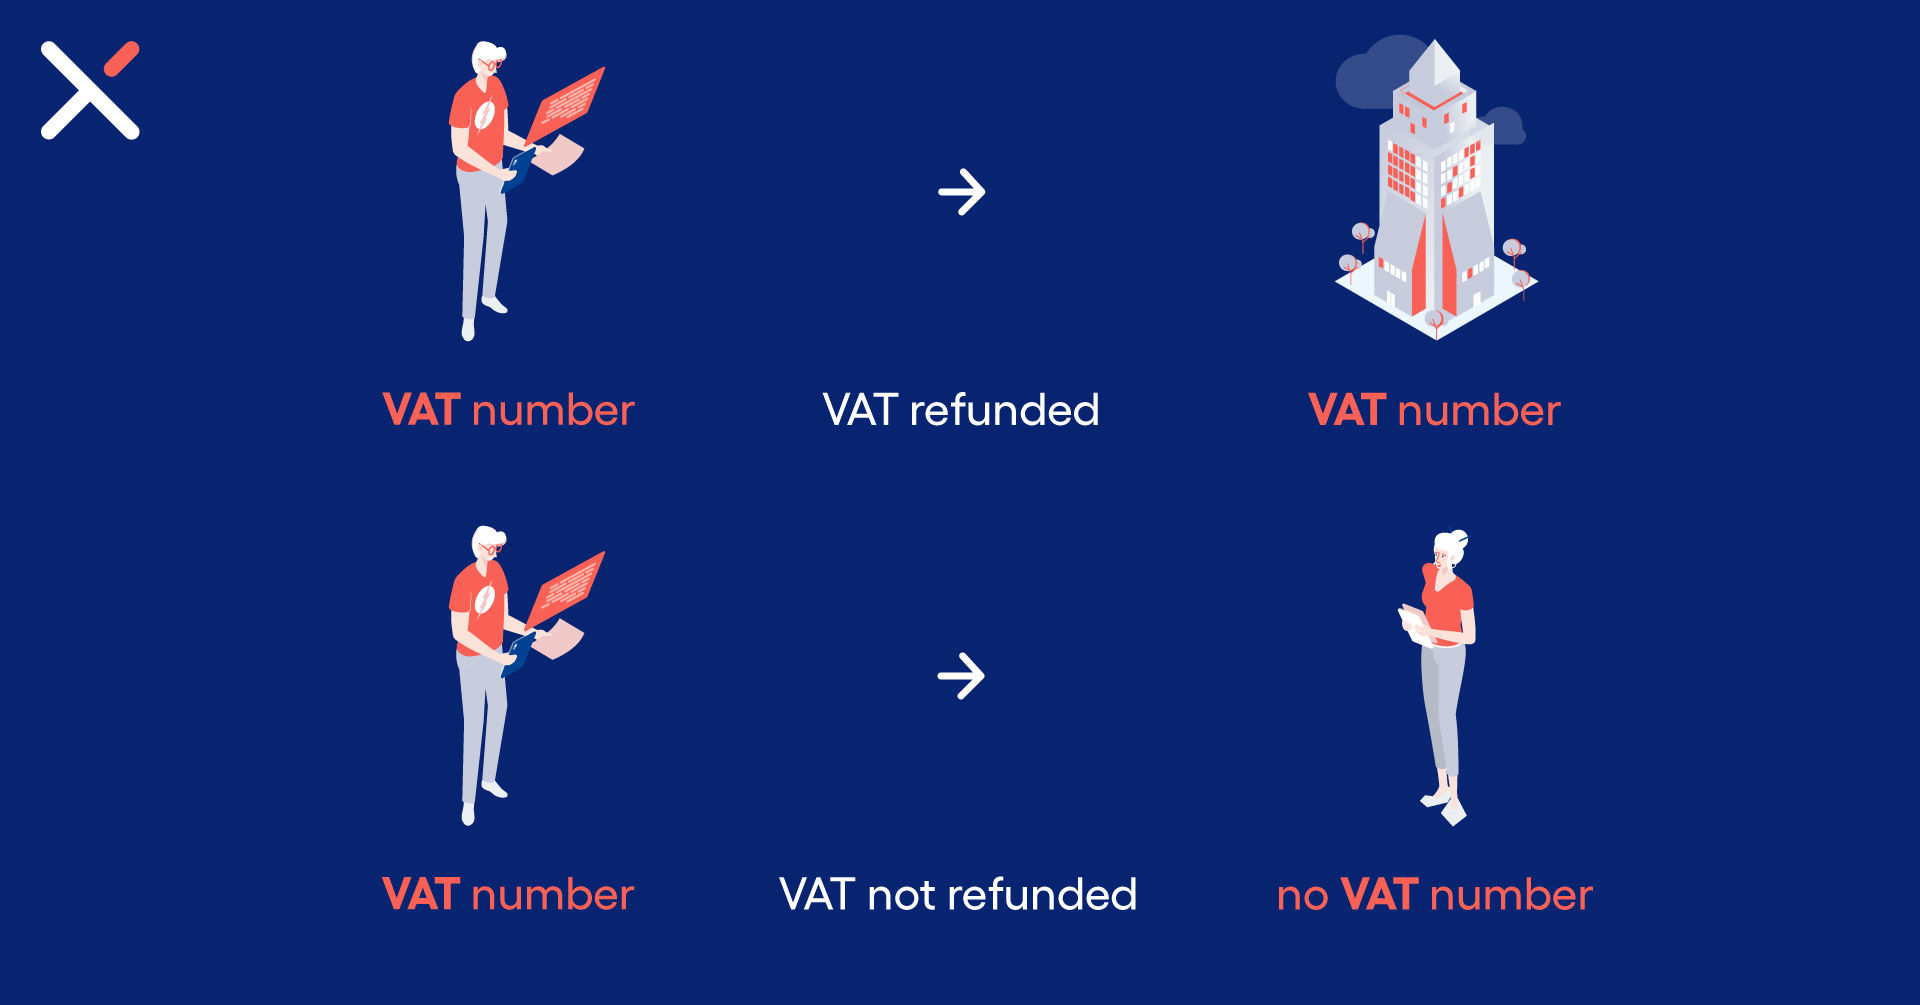 A simple graph about VAT refunds. If both you and your customer have VAT numbers, you'll be refunded. If not, there's no refund.